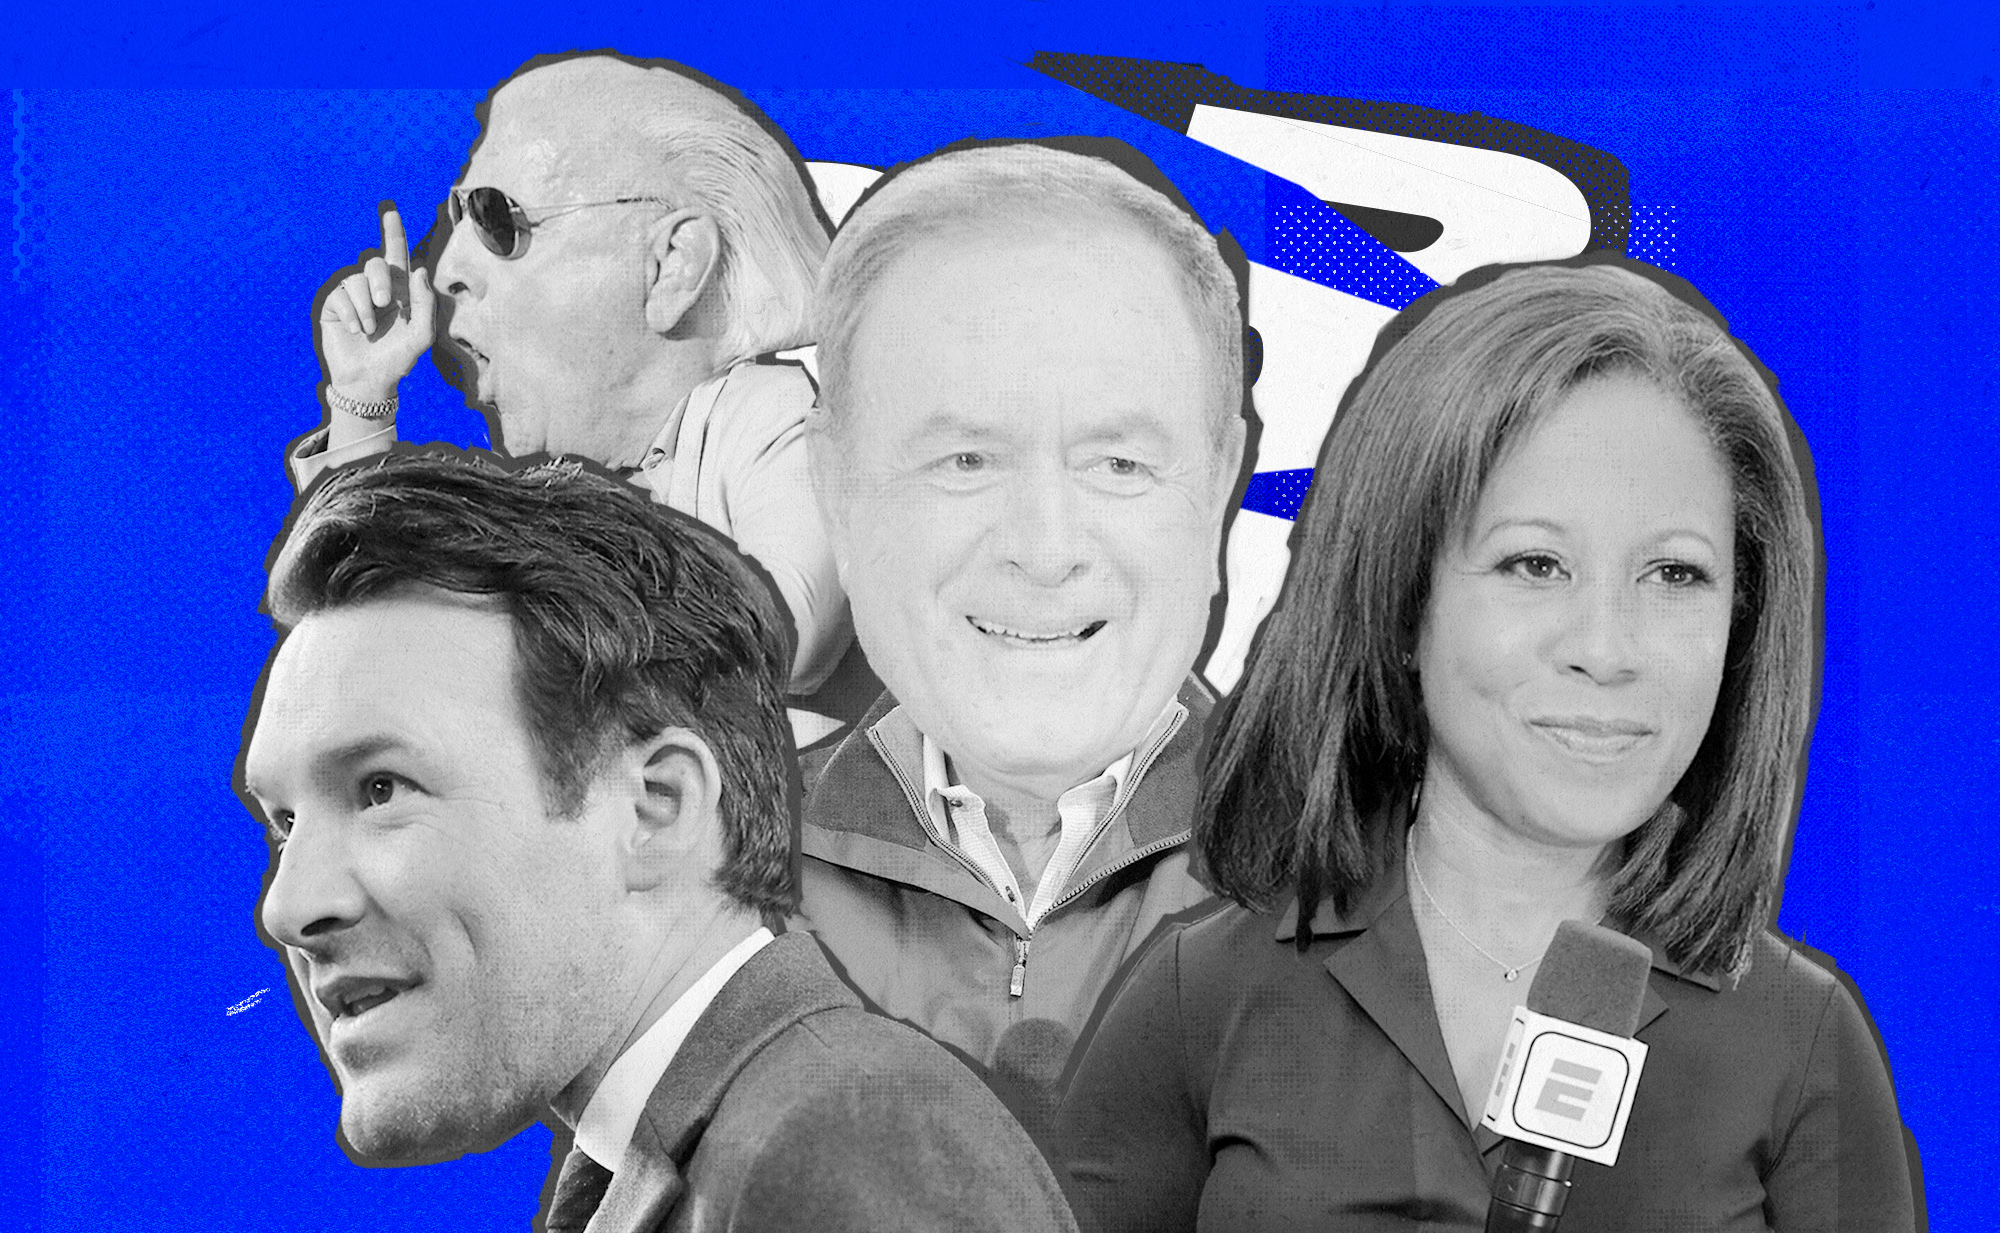 An art collage of Al Michaels, Lisa Salters, Tony Romo, Ric Flair, superimposed on a blue background with black and white graphics